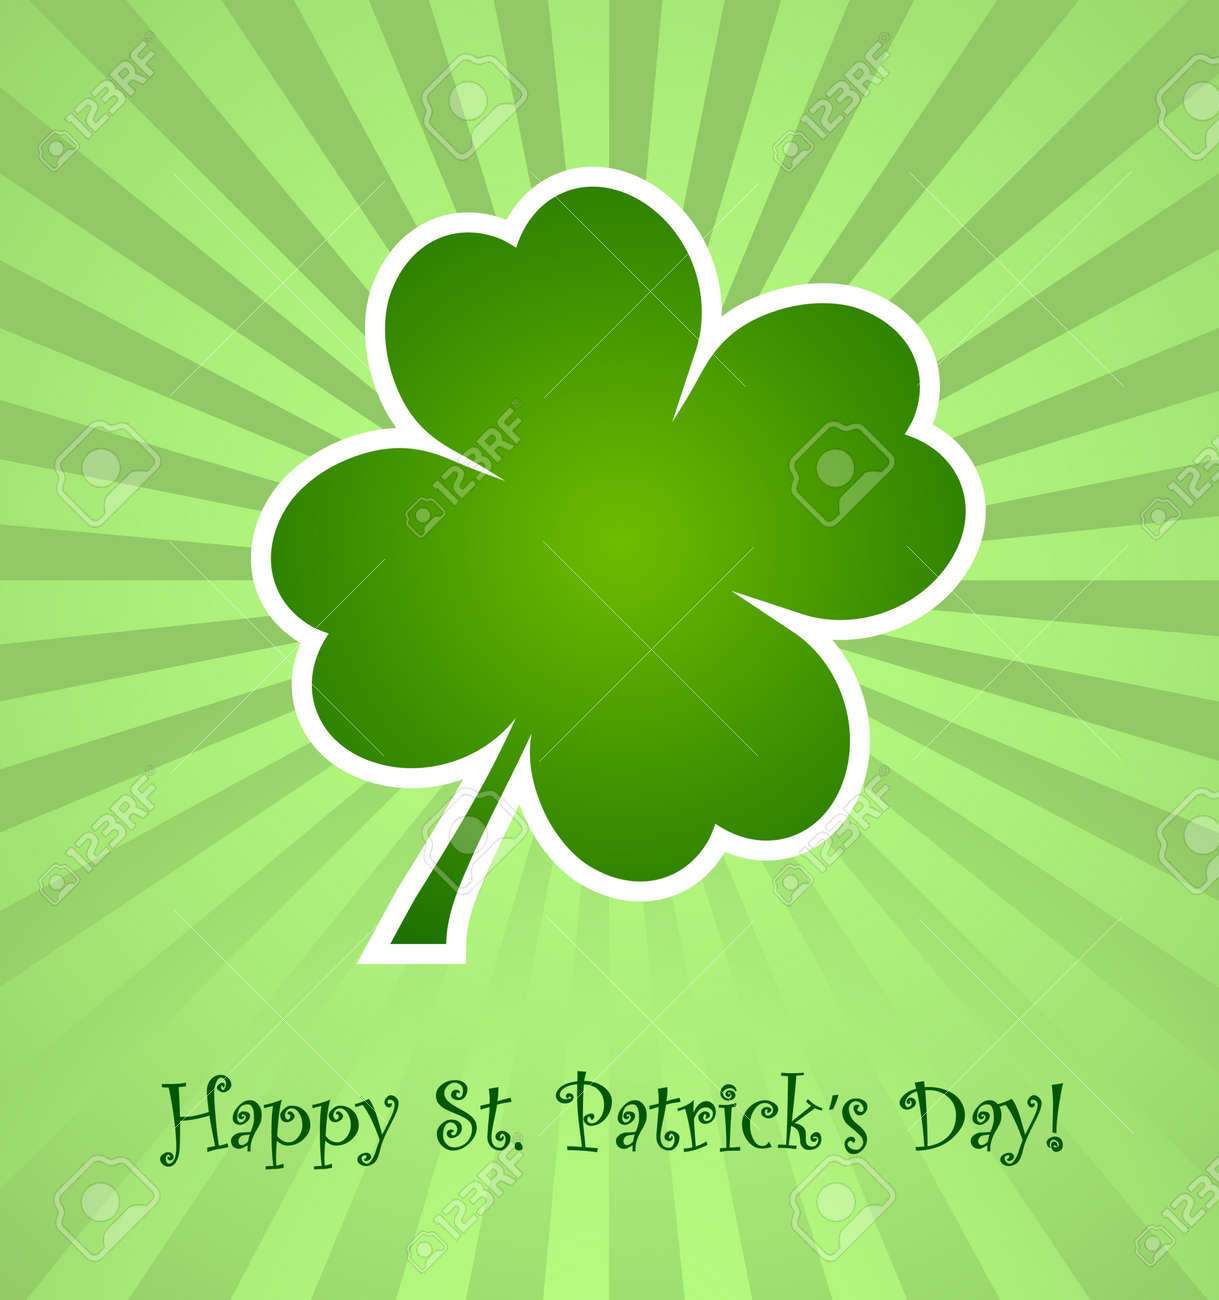 Clover leaf element background for happy St. Patricks Day Stock Vector - 17597302